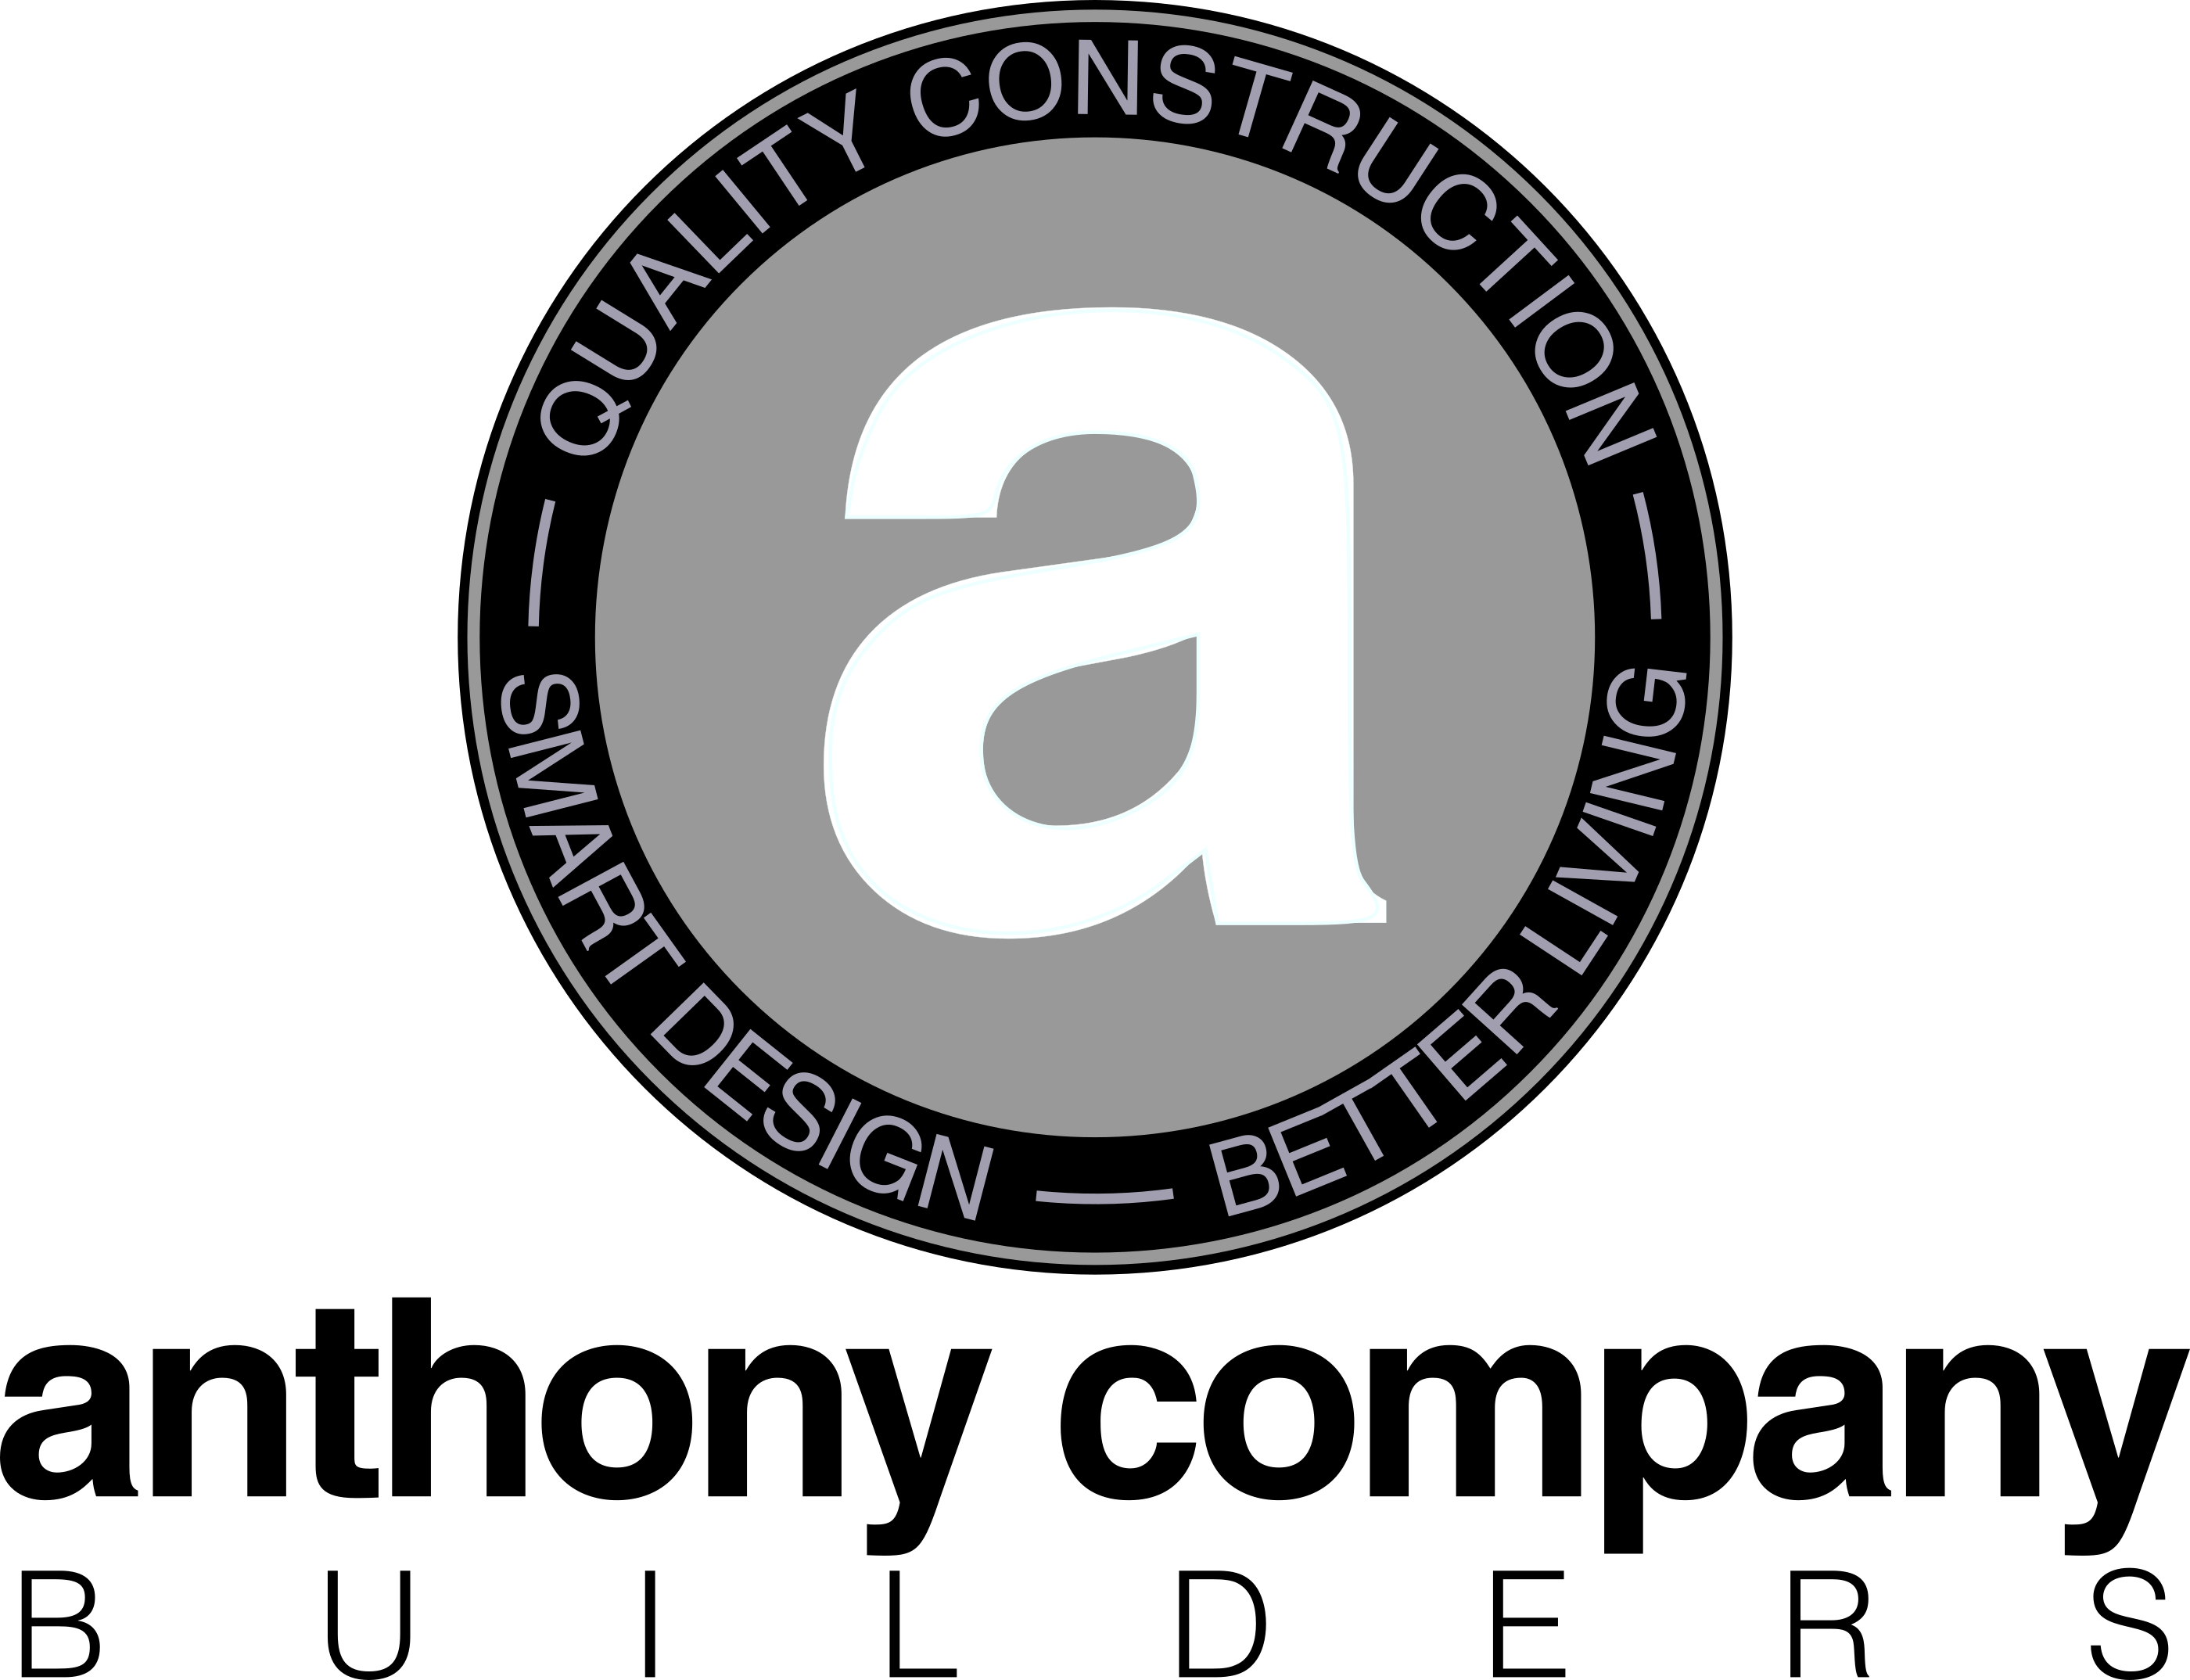 Anthony Company Builders